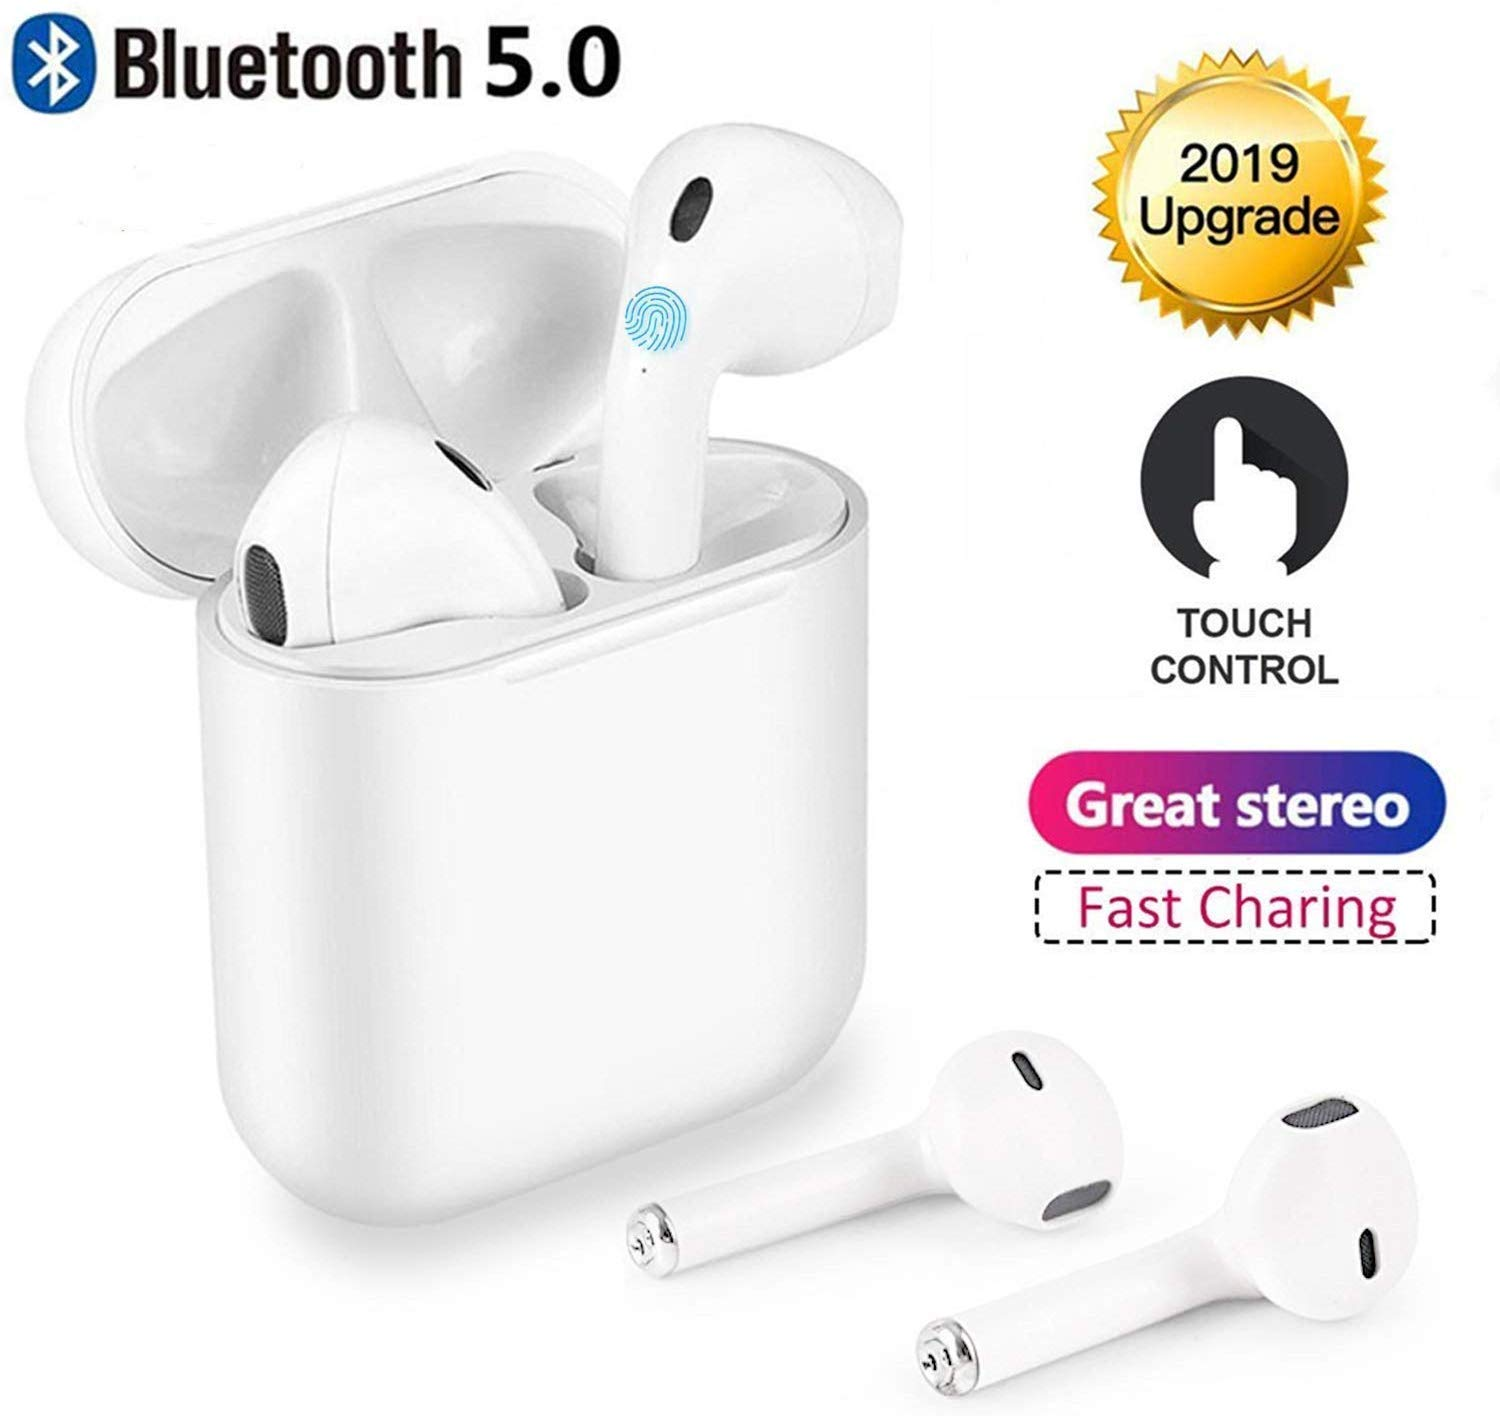 Wireless Earbuds – Bluetooth 5.0 Stereo Noise Canceling Headphones with Deep Bass, Built-in Microphone, in-ear Headphones with Charging Box Compatible iOS Airpods iphone Samsung Android